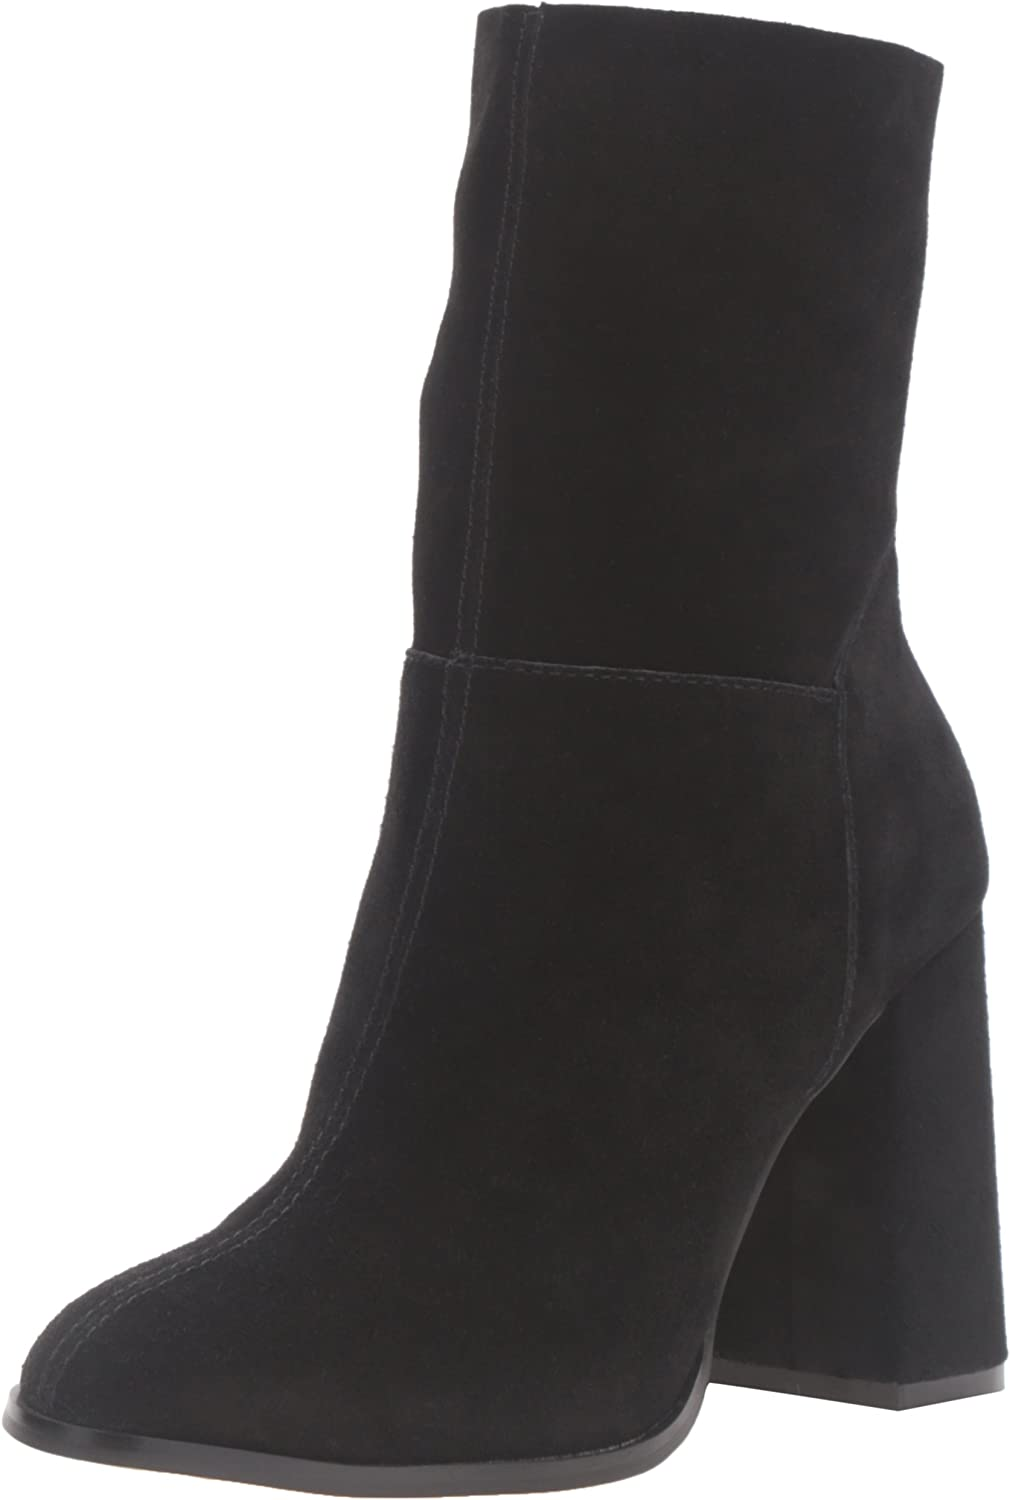 Chinese Laundry Women's Classic Boot